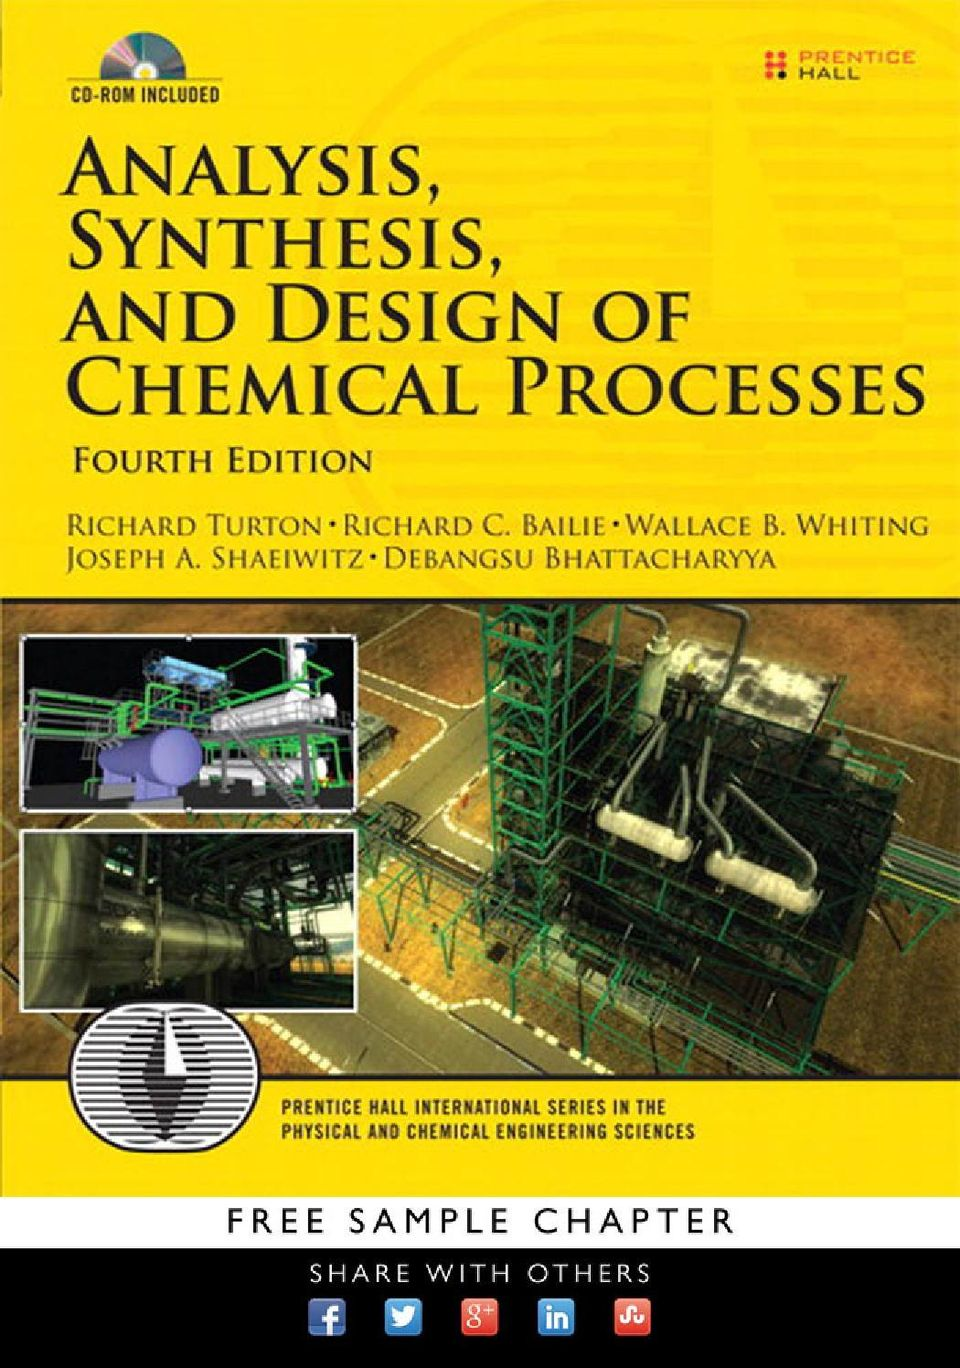 2 Analysis, Synthesis, and Design of Chemical Processes Fourth Edition